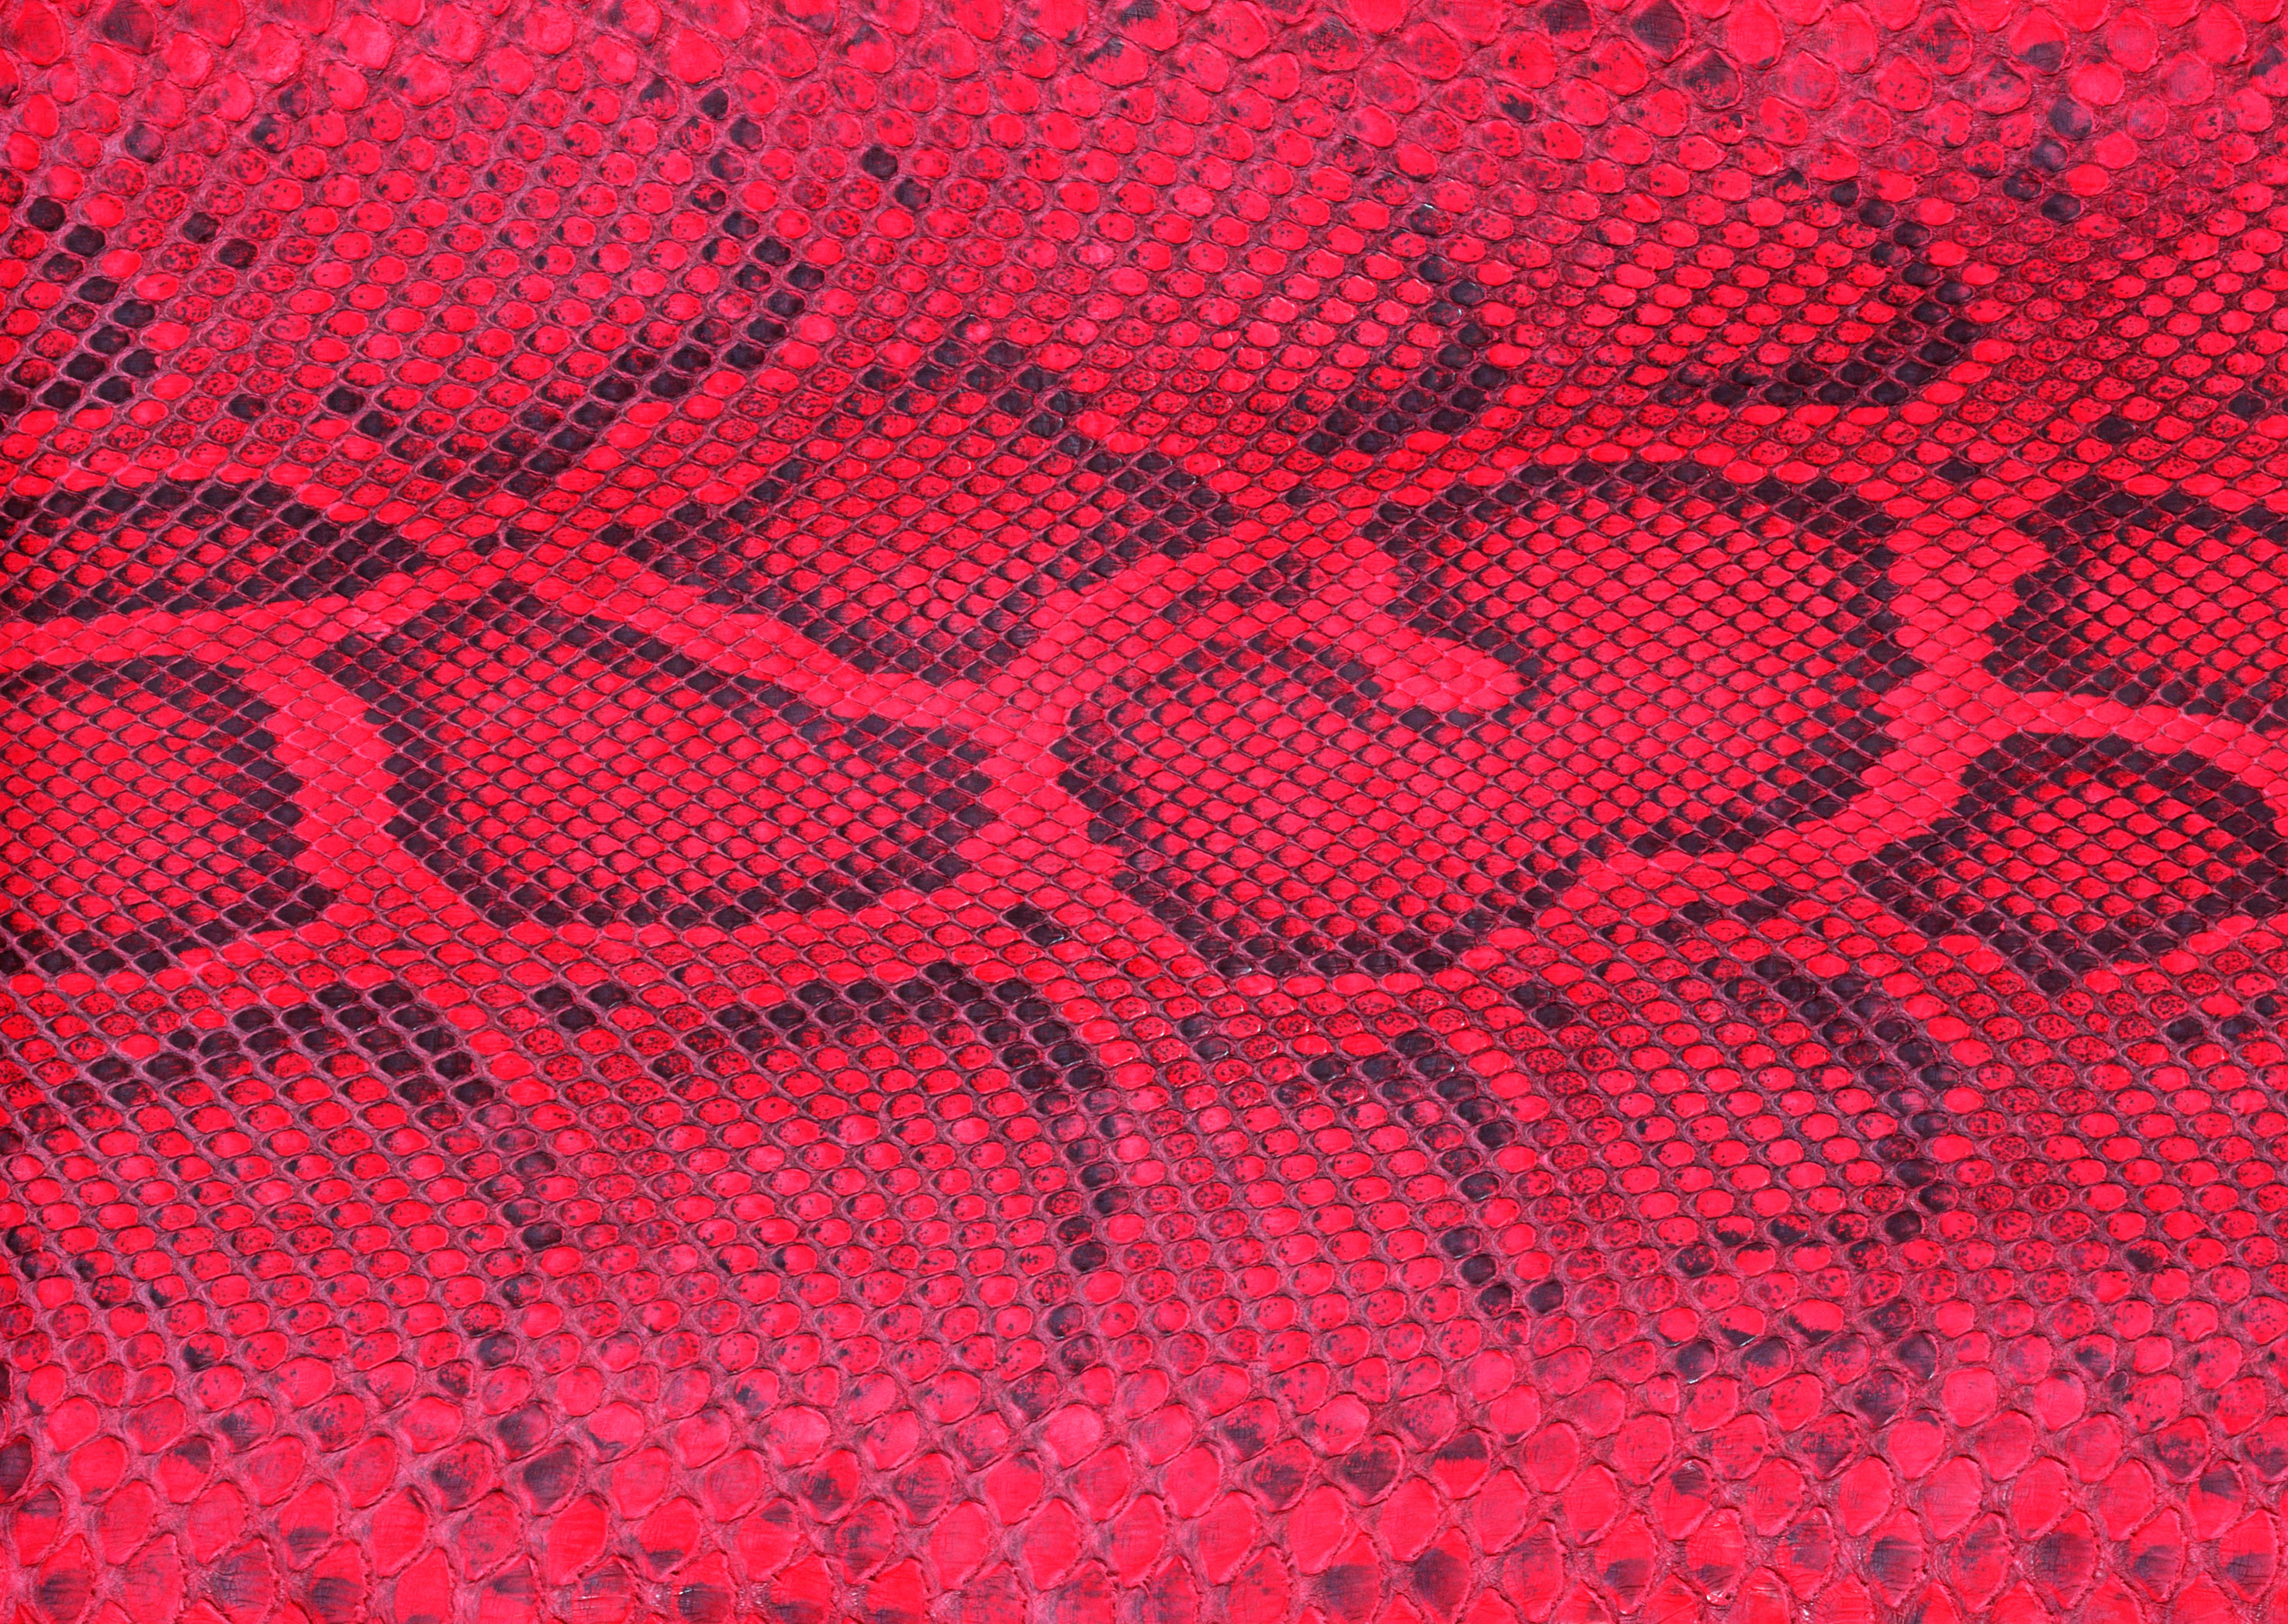 Red snake leather texture background image download, snakes